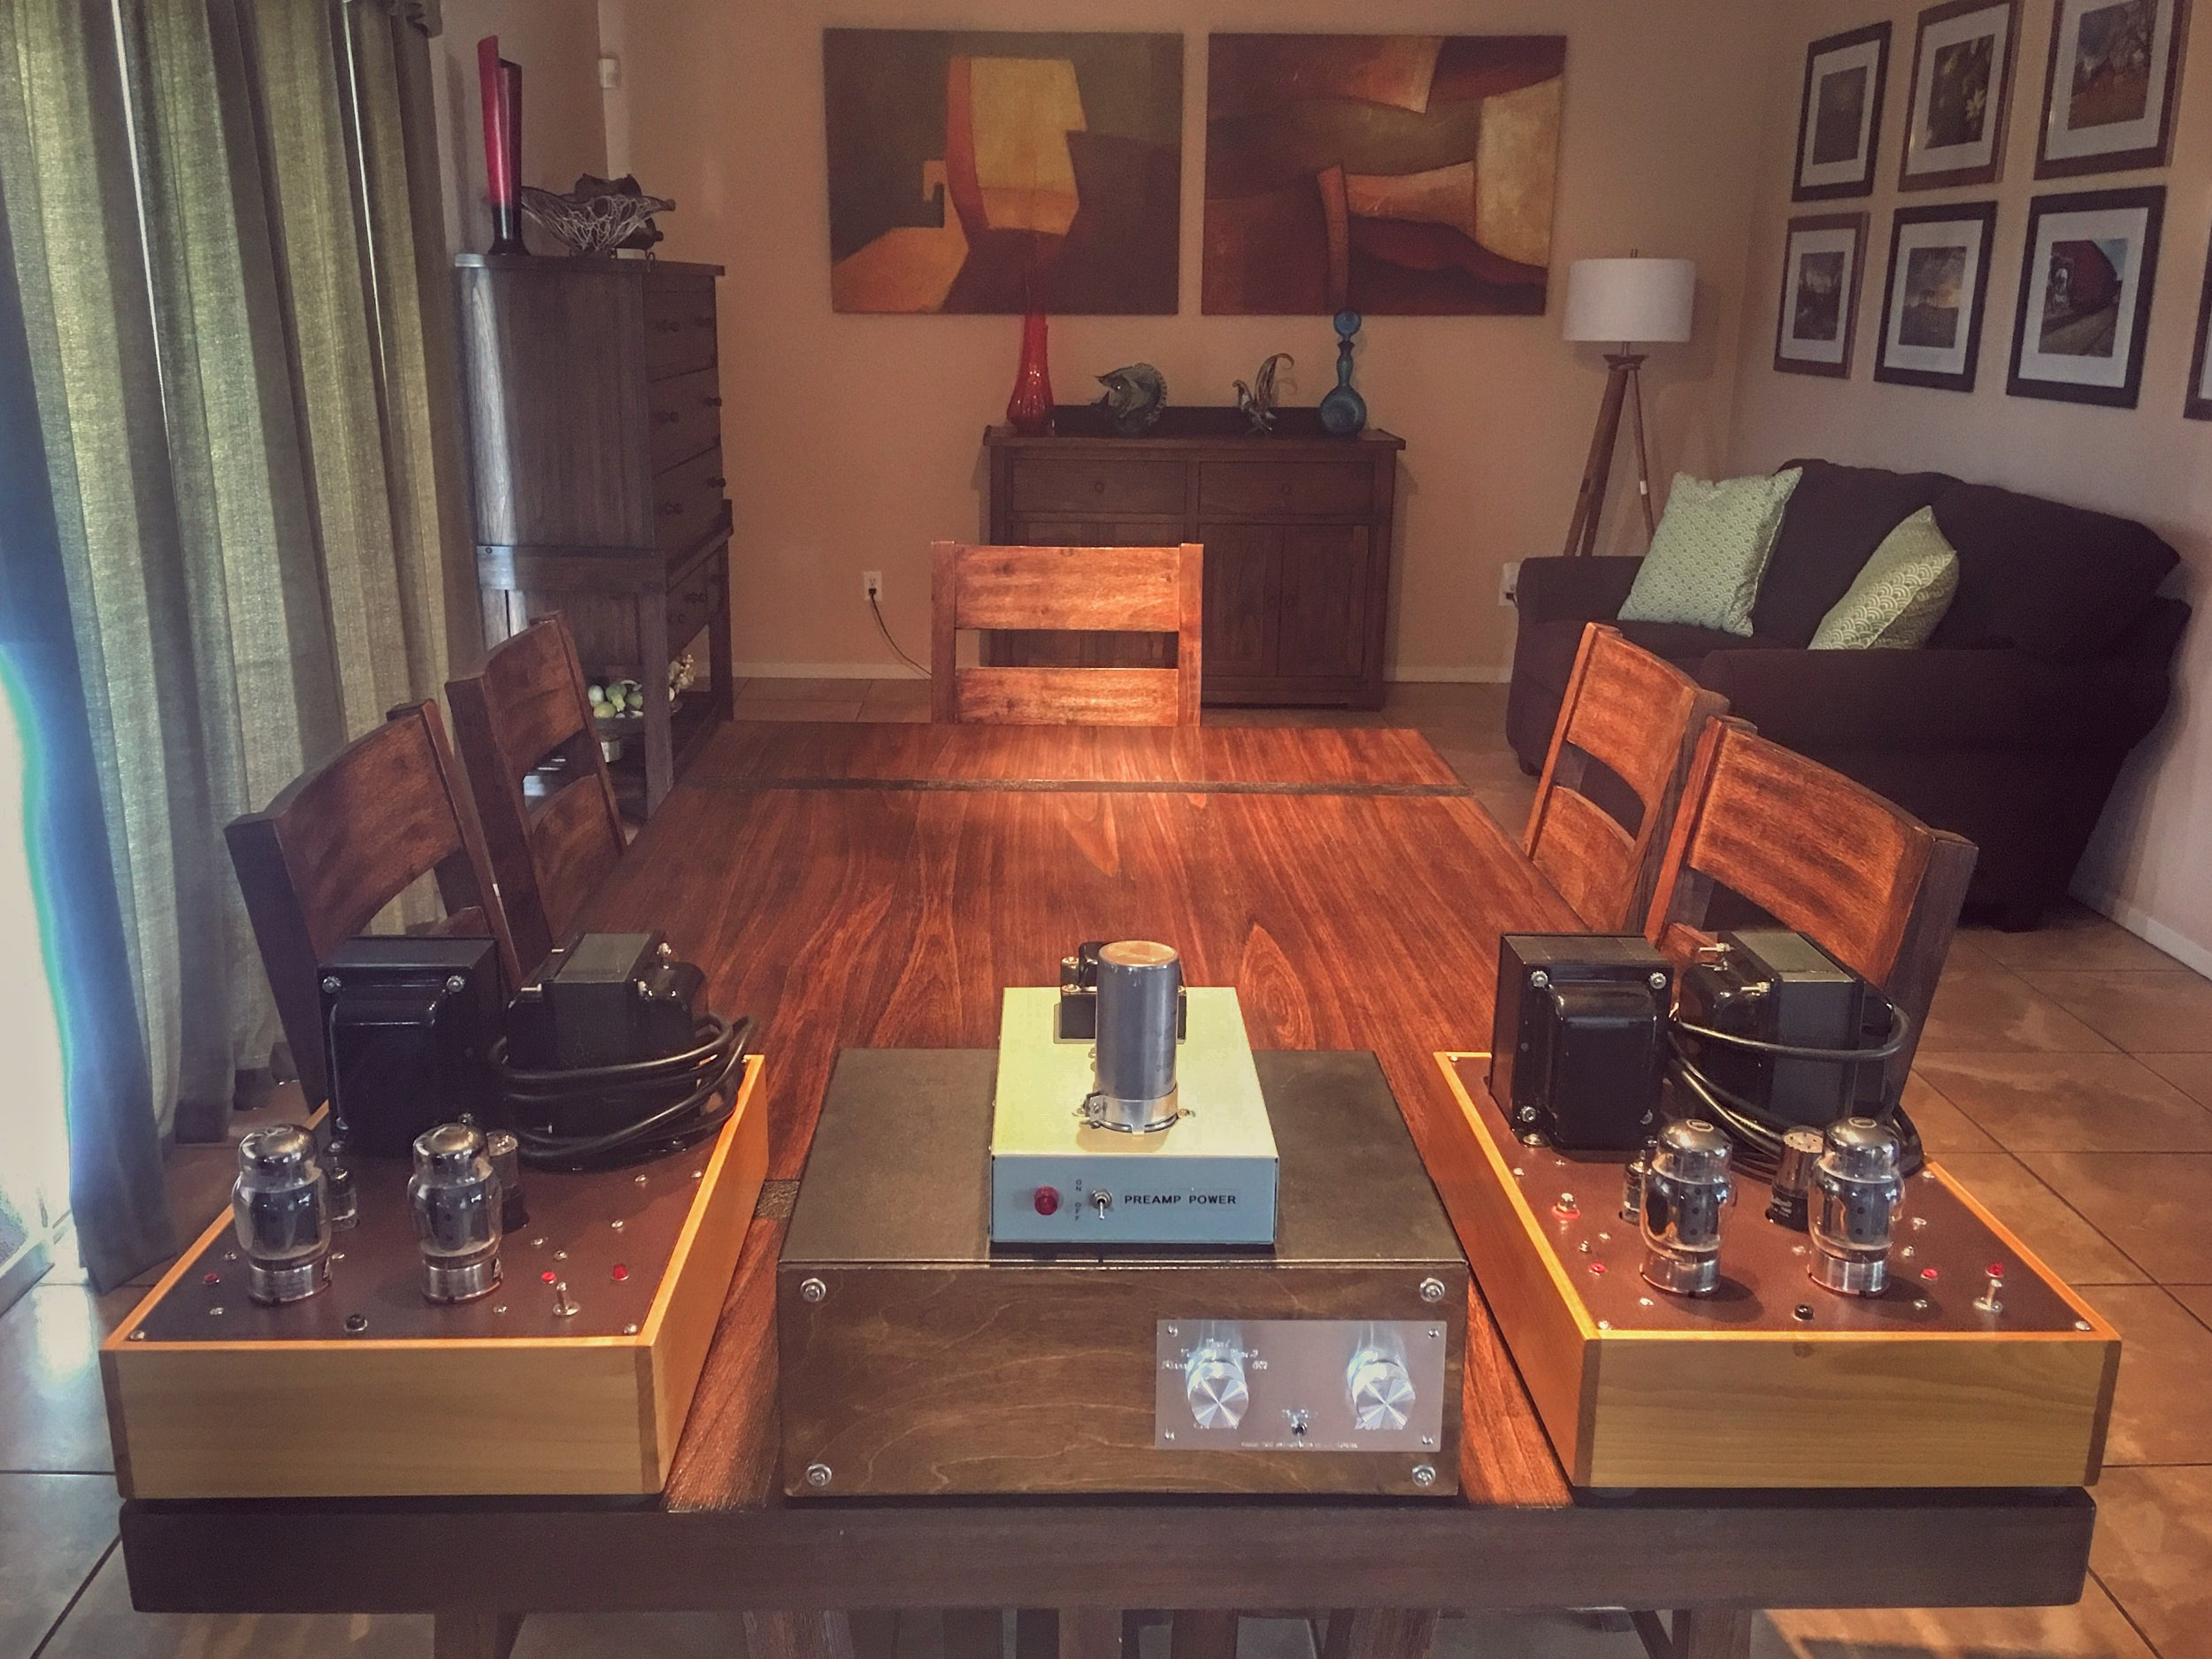 James Burgess triode monoblocks based on the classic Eico HF-89 running 6550's